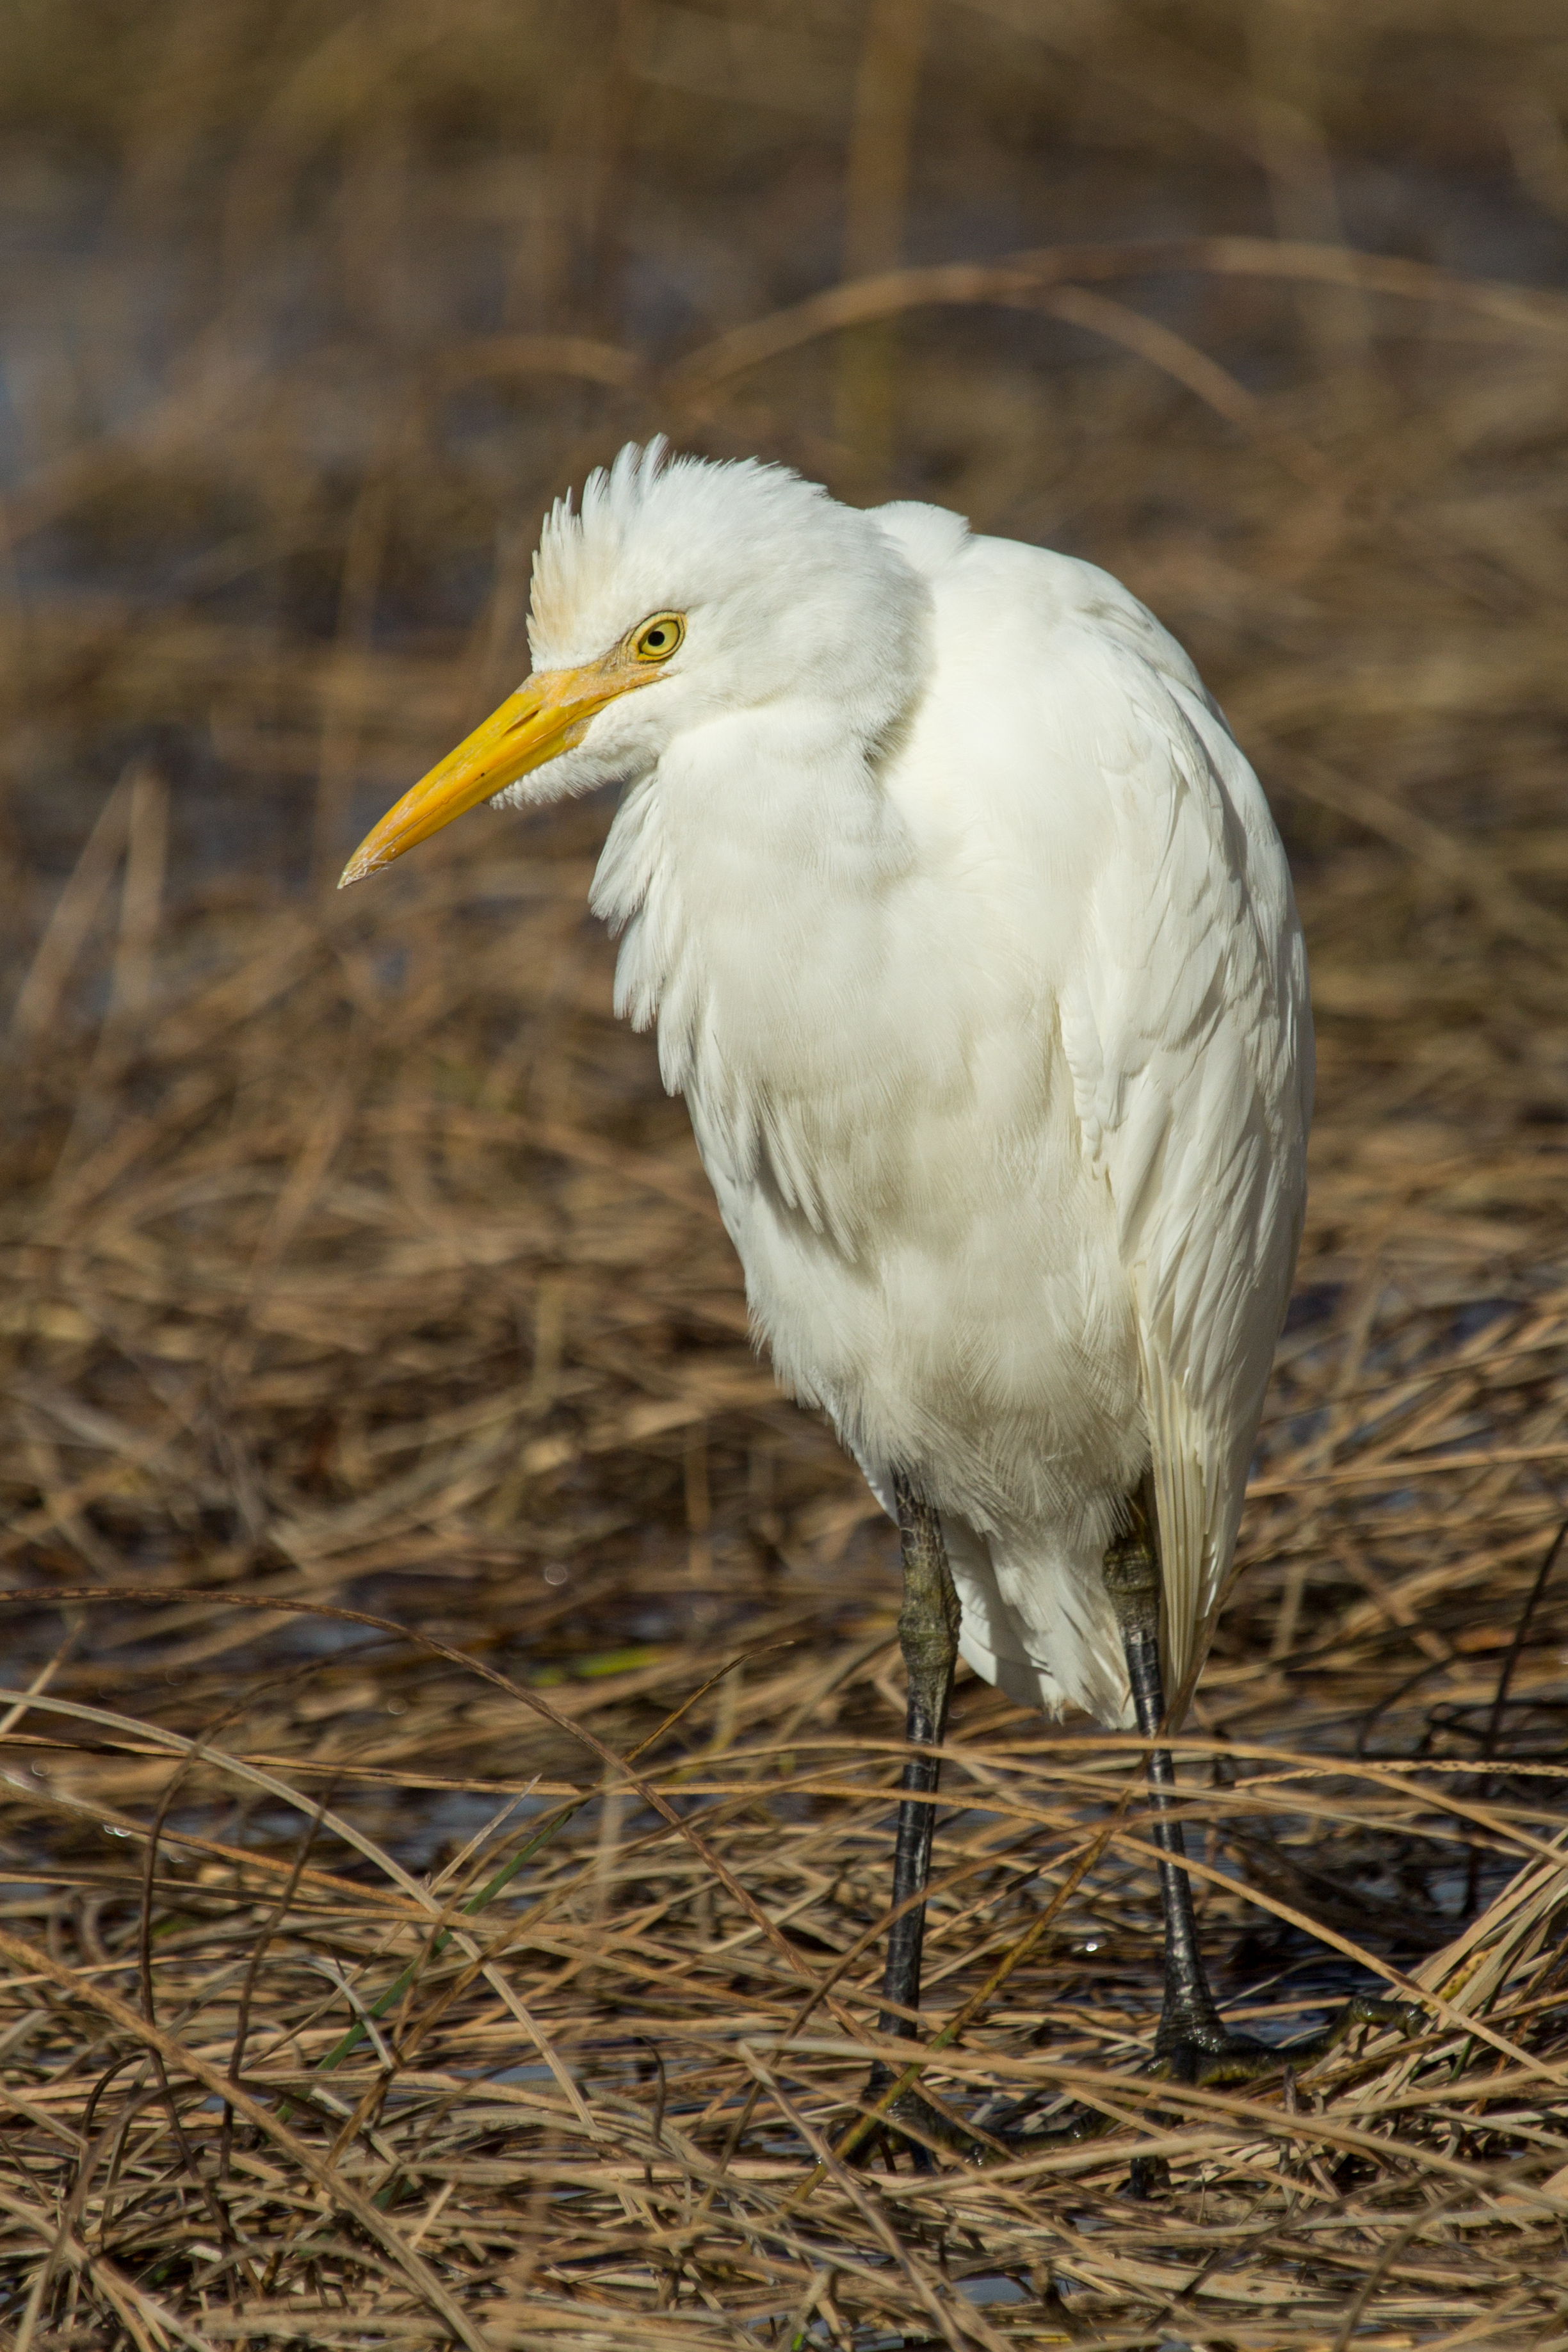 How to Identify a Cattle Egret